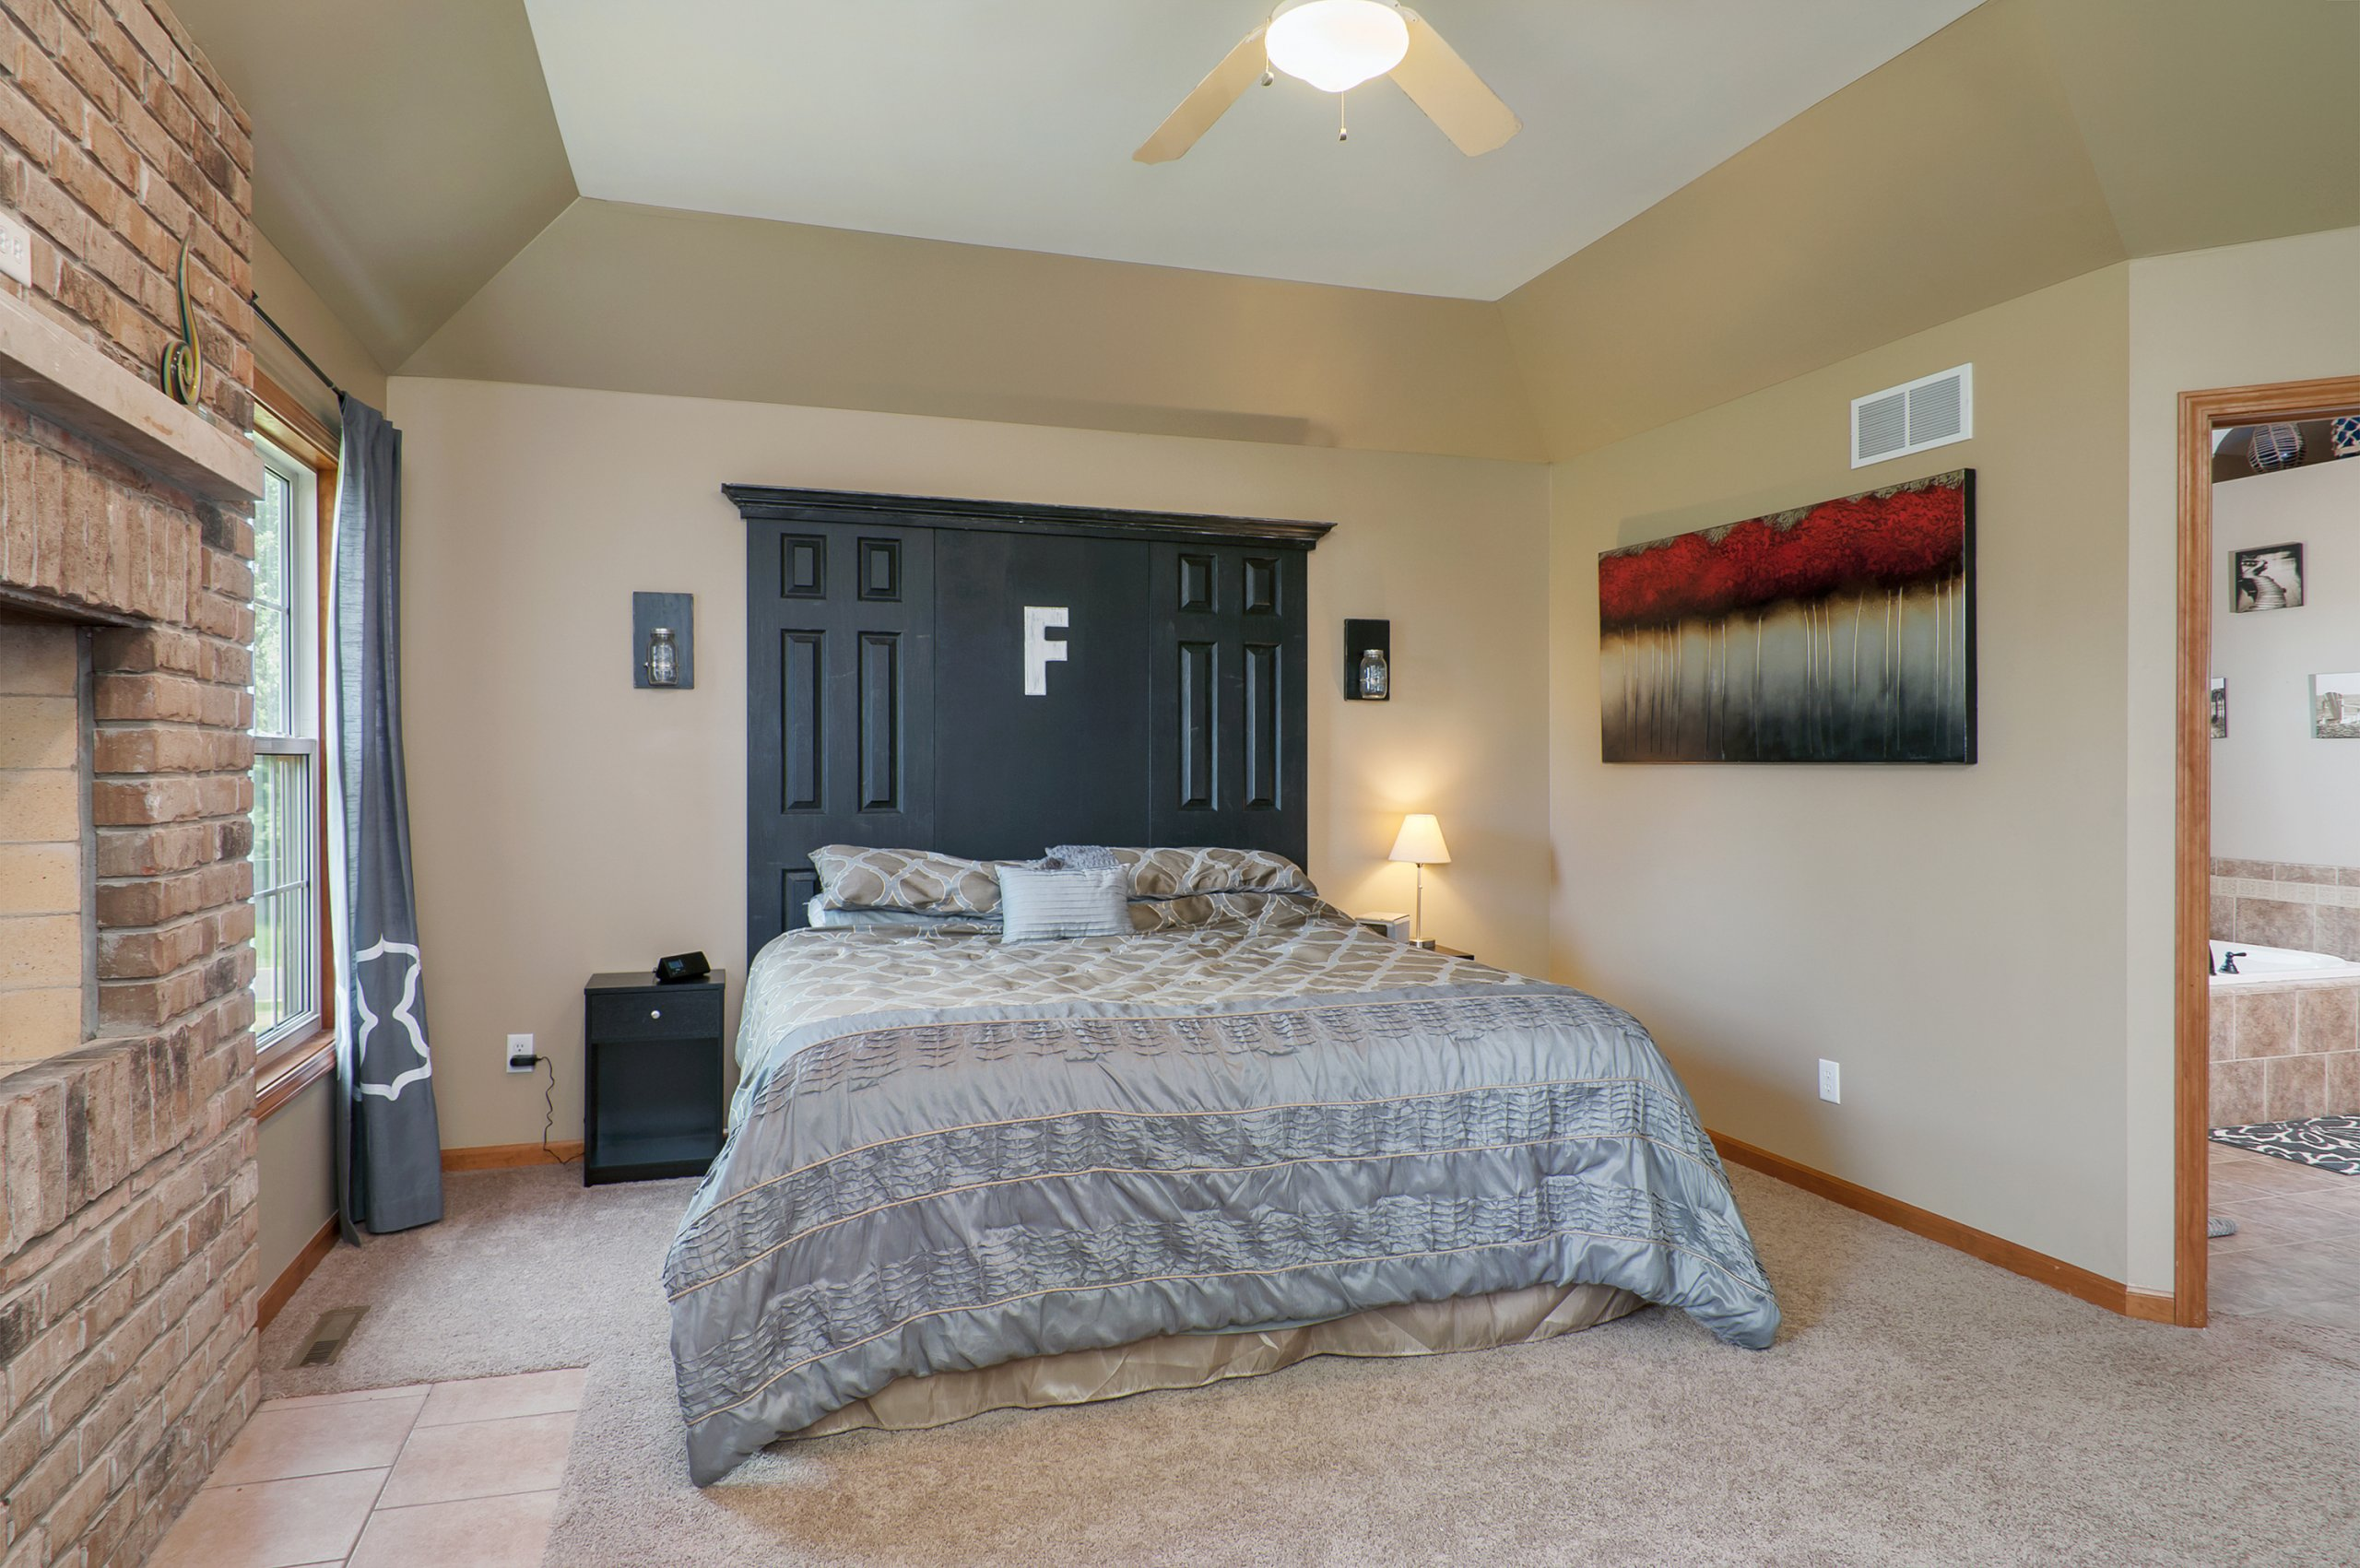 Master bedroom interior at high end home in Sheridan, IL